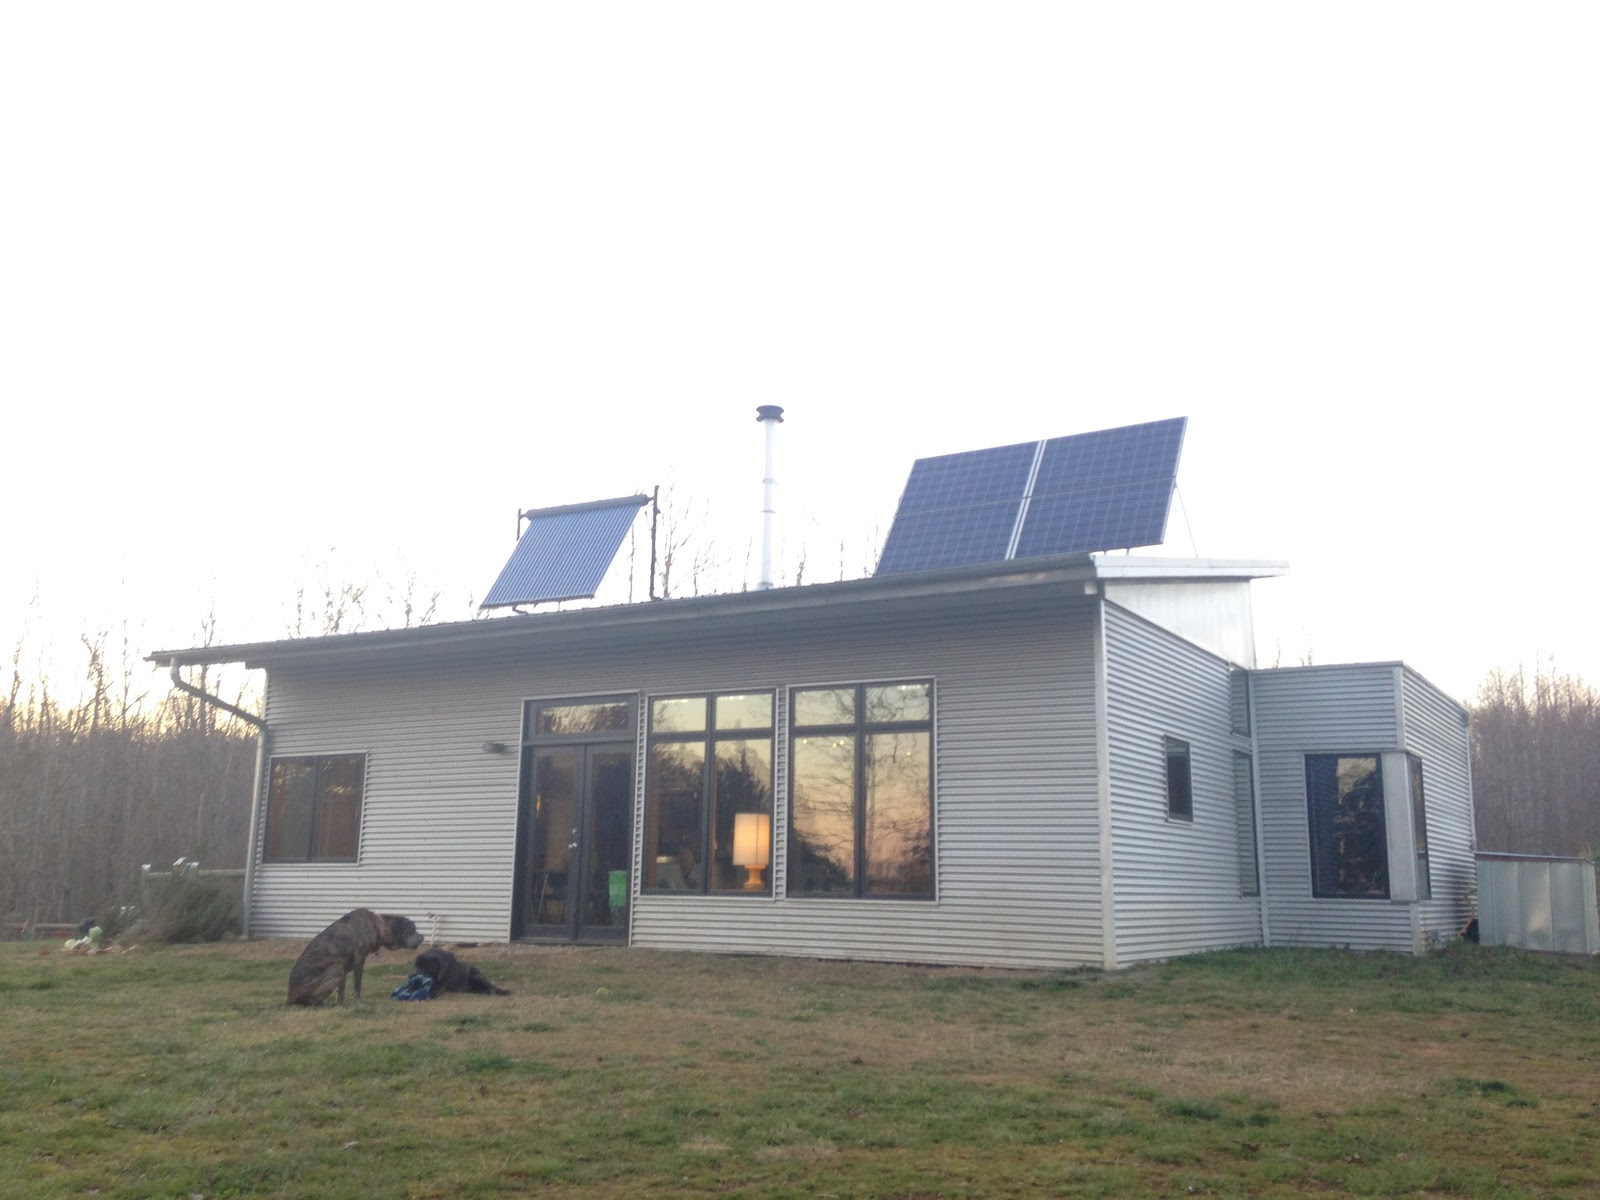 Off grid passive solar prefab watches shipping containers for Passive solar prefab homes